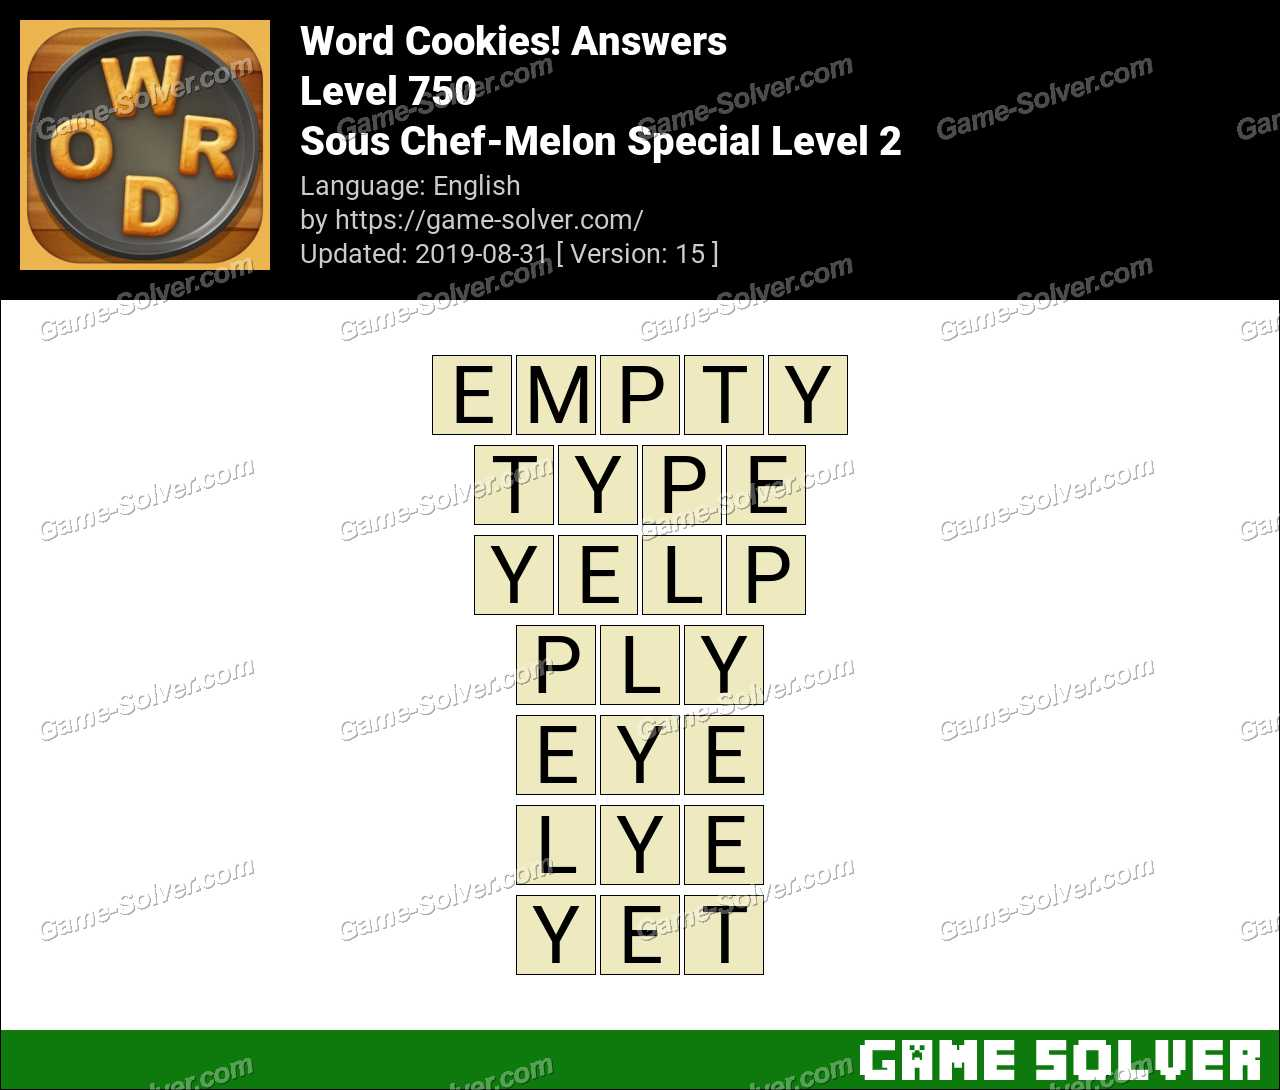 Word Cookies Sous Chef-Melon Special Level 2 Answers